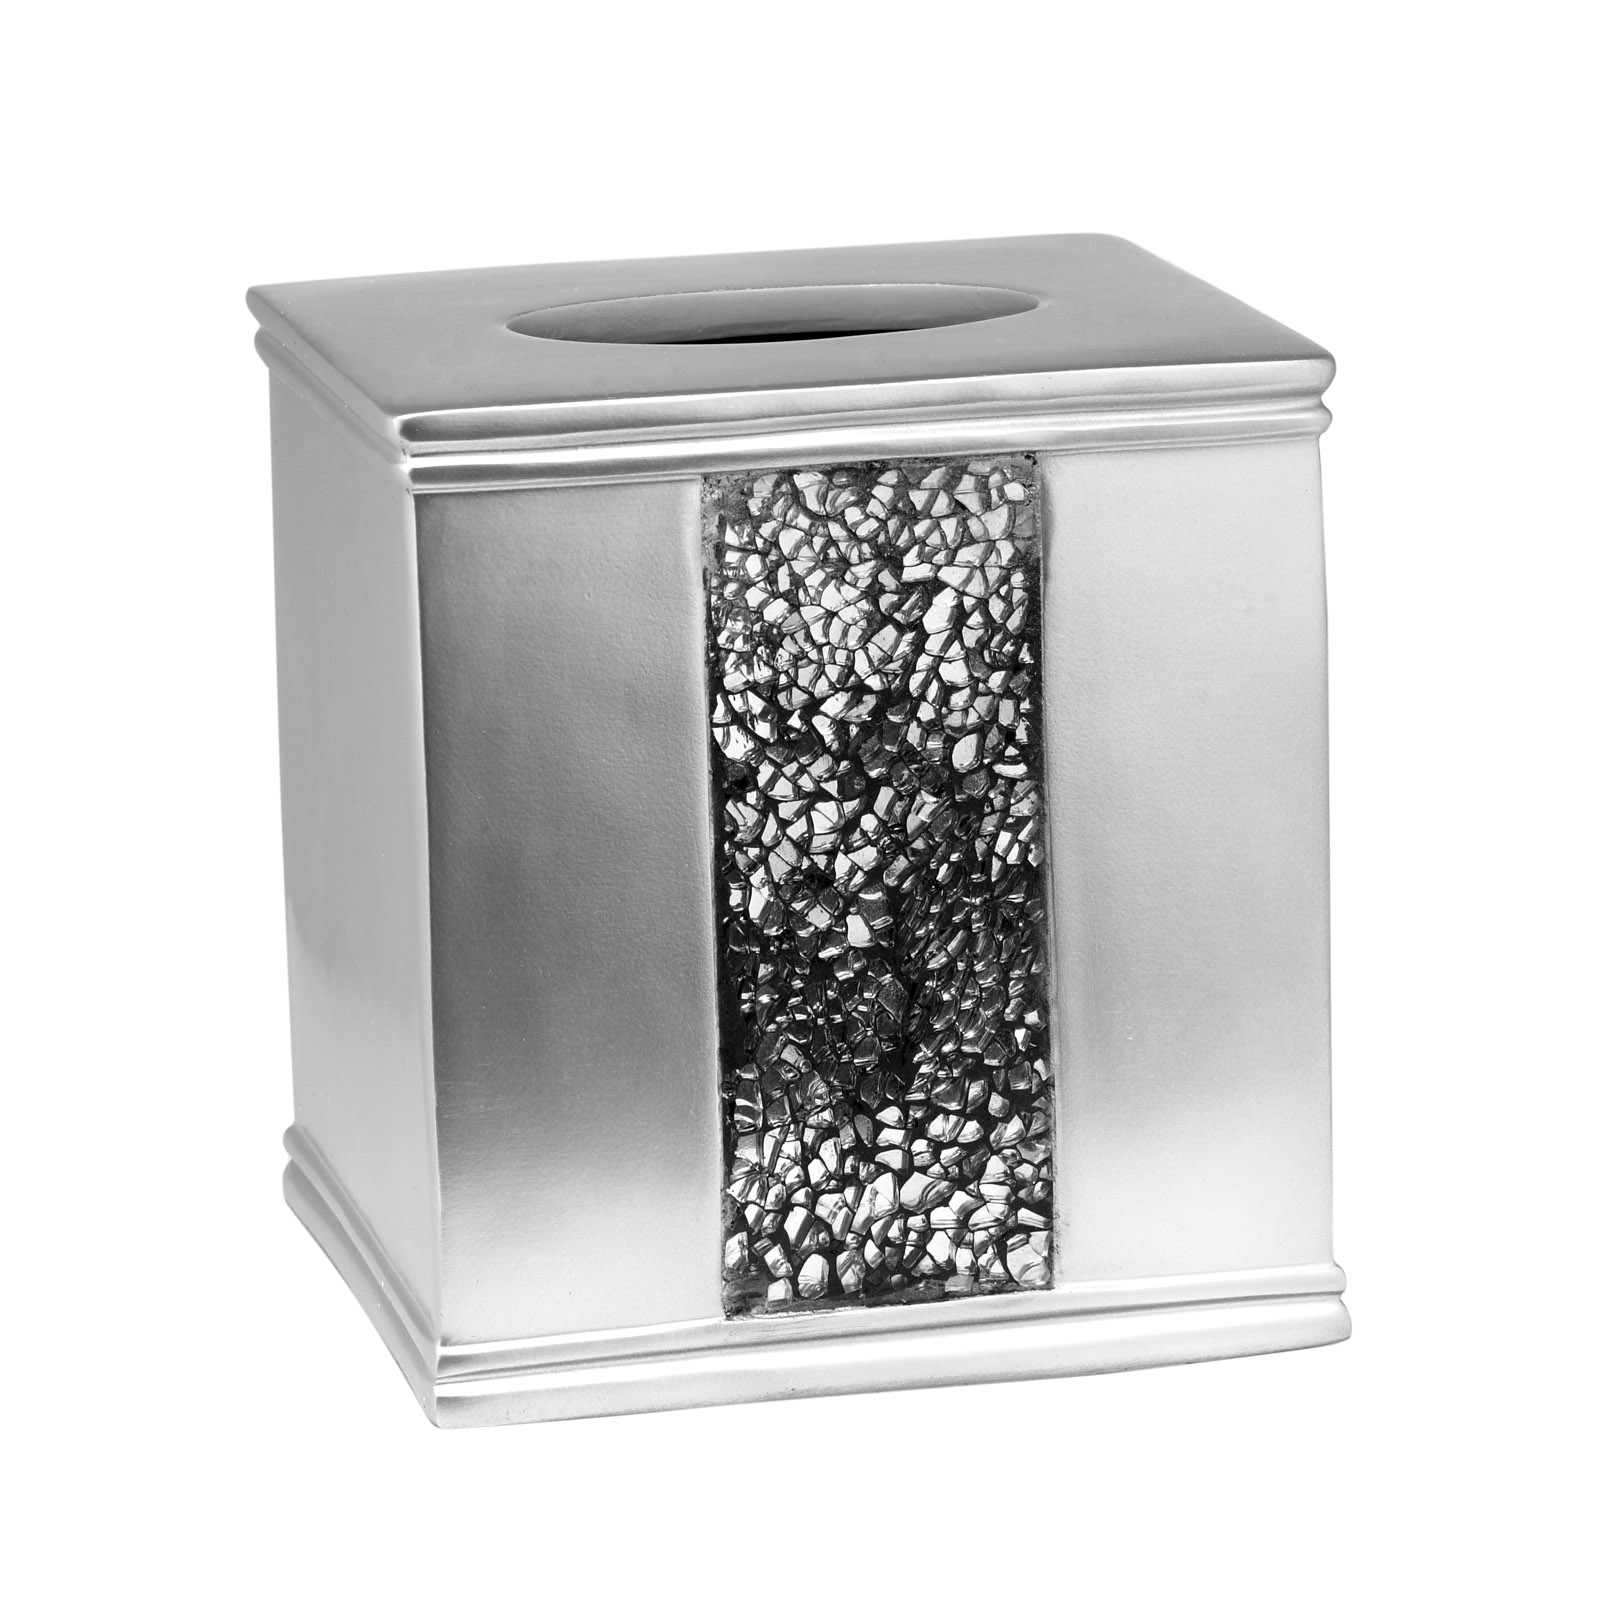 Popular Bath Sinatra Silver Collection - Bathroom Tissue Box Cover